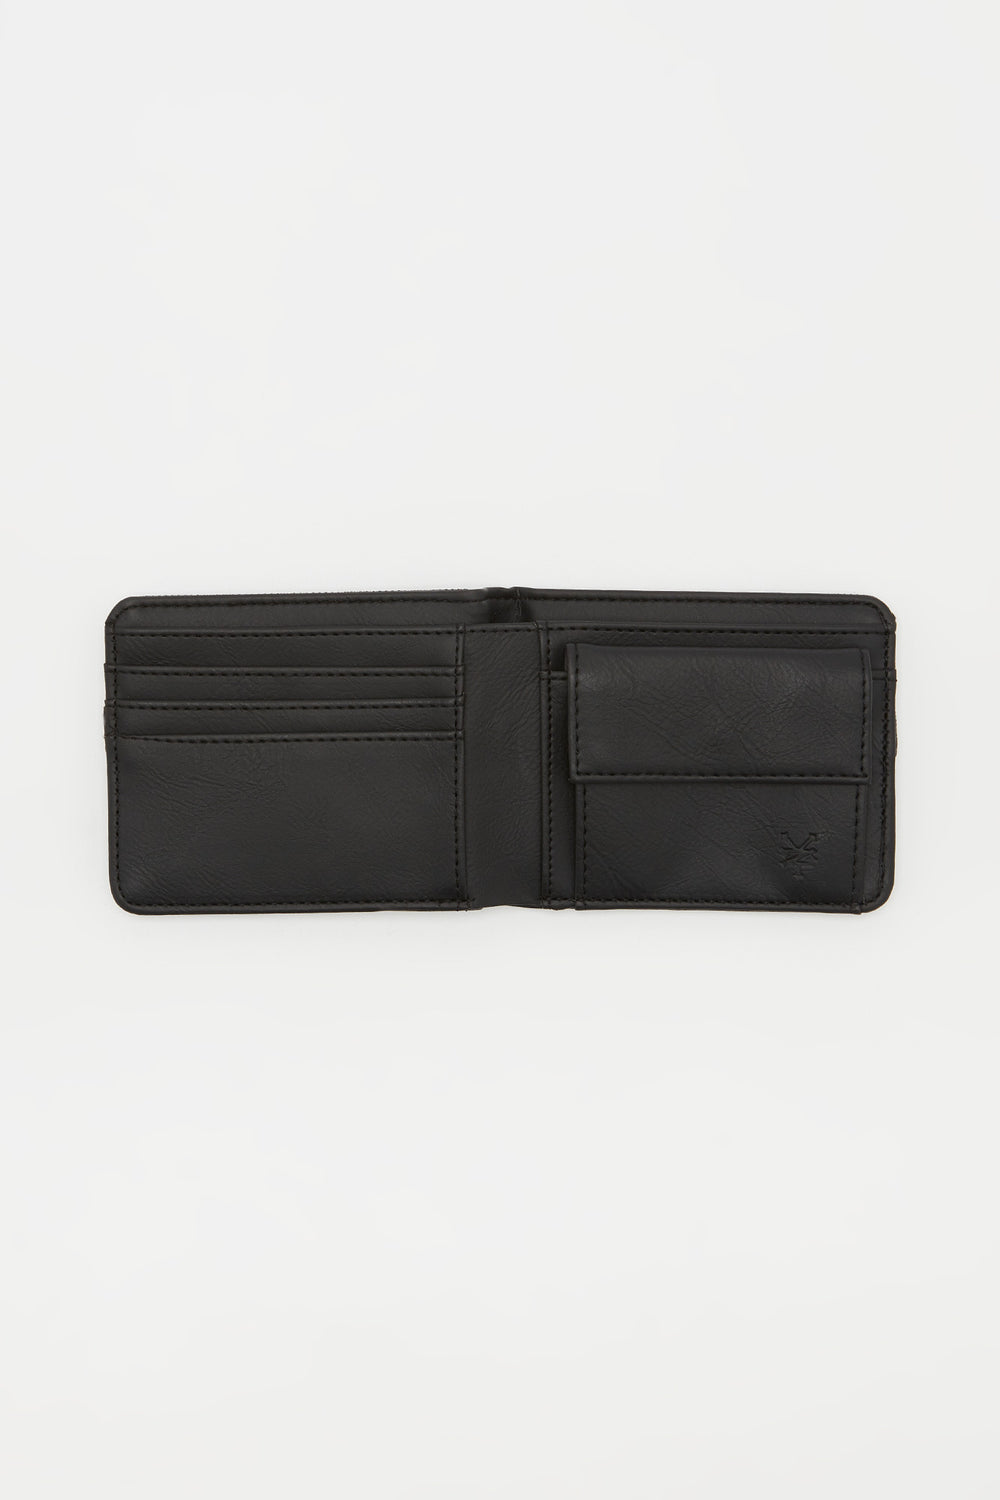 Zoo York Mens Colour Block Wallet Charcoal